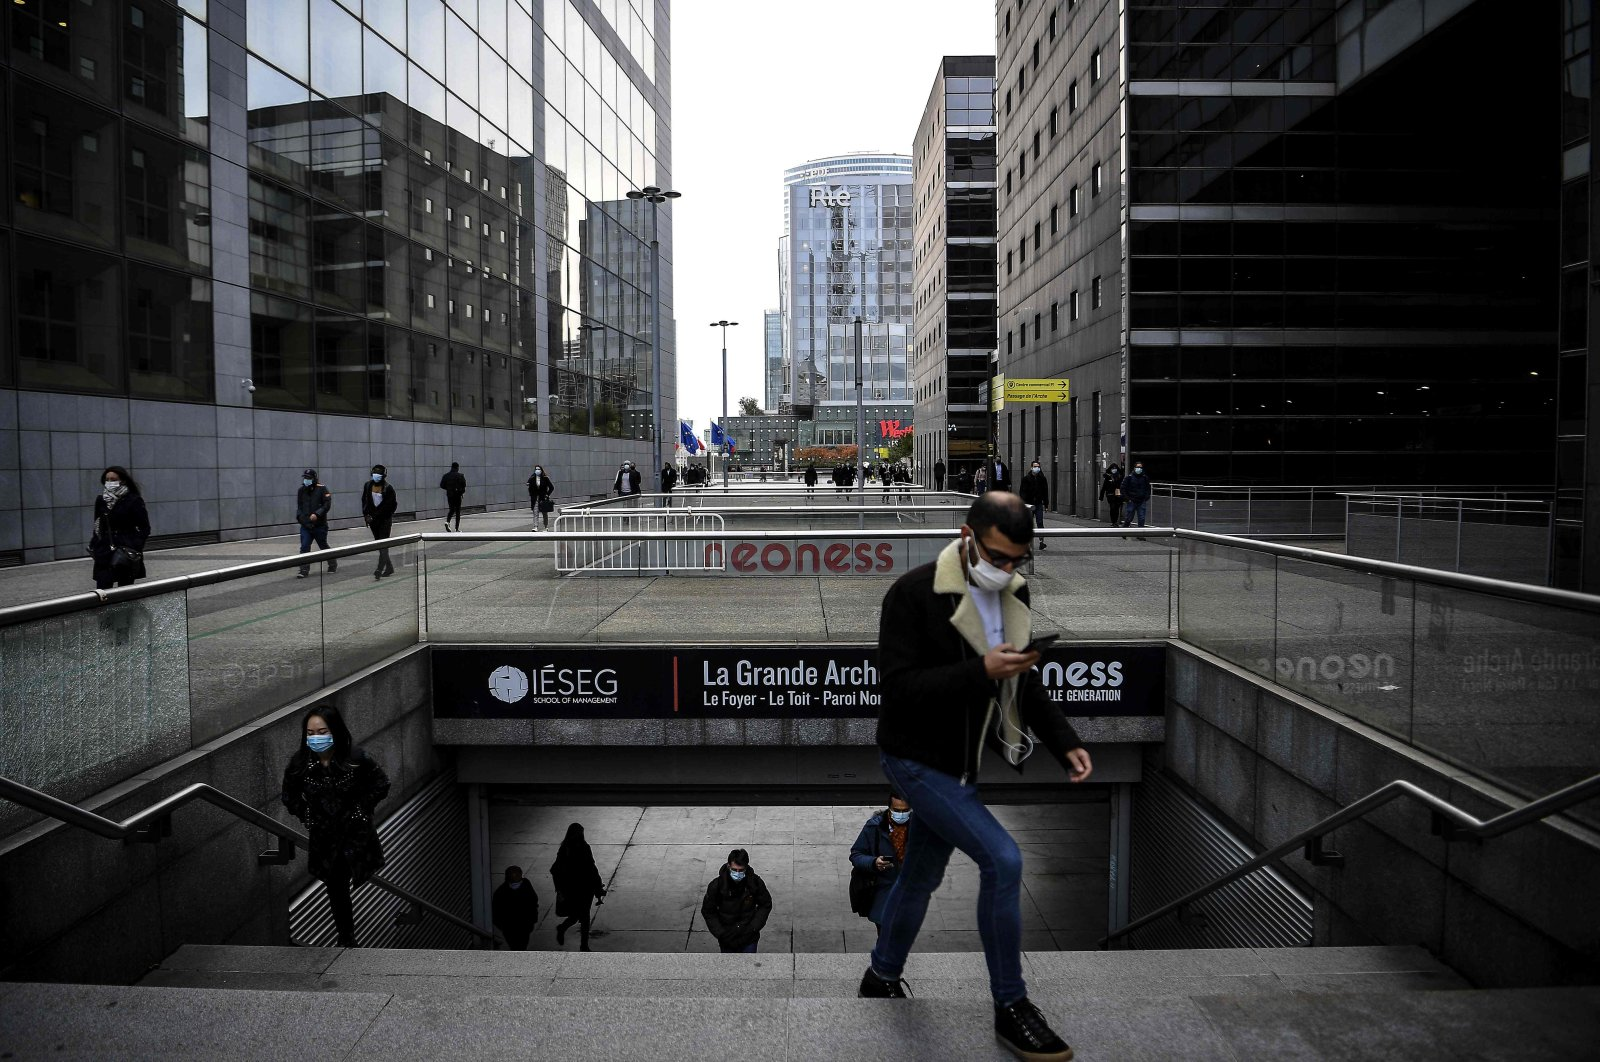 People wearing protective face masks walk by high-rise buildings, Paris, France, Oct. 16, 2020. (AFP Photo)